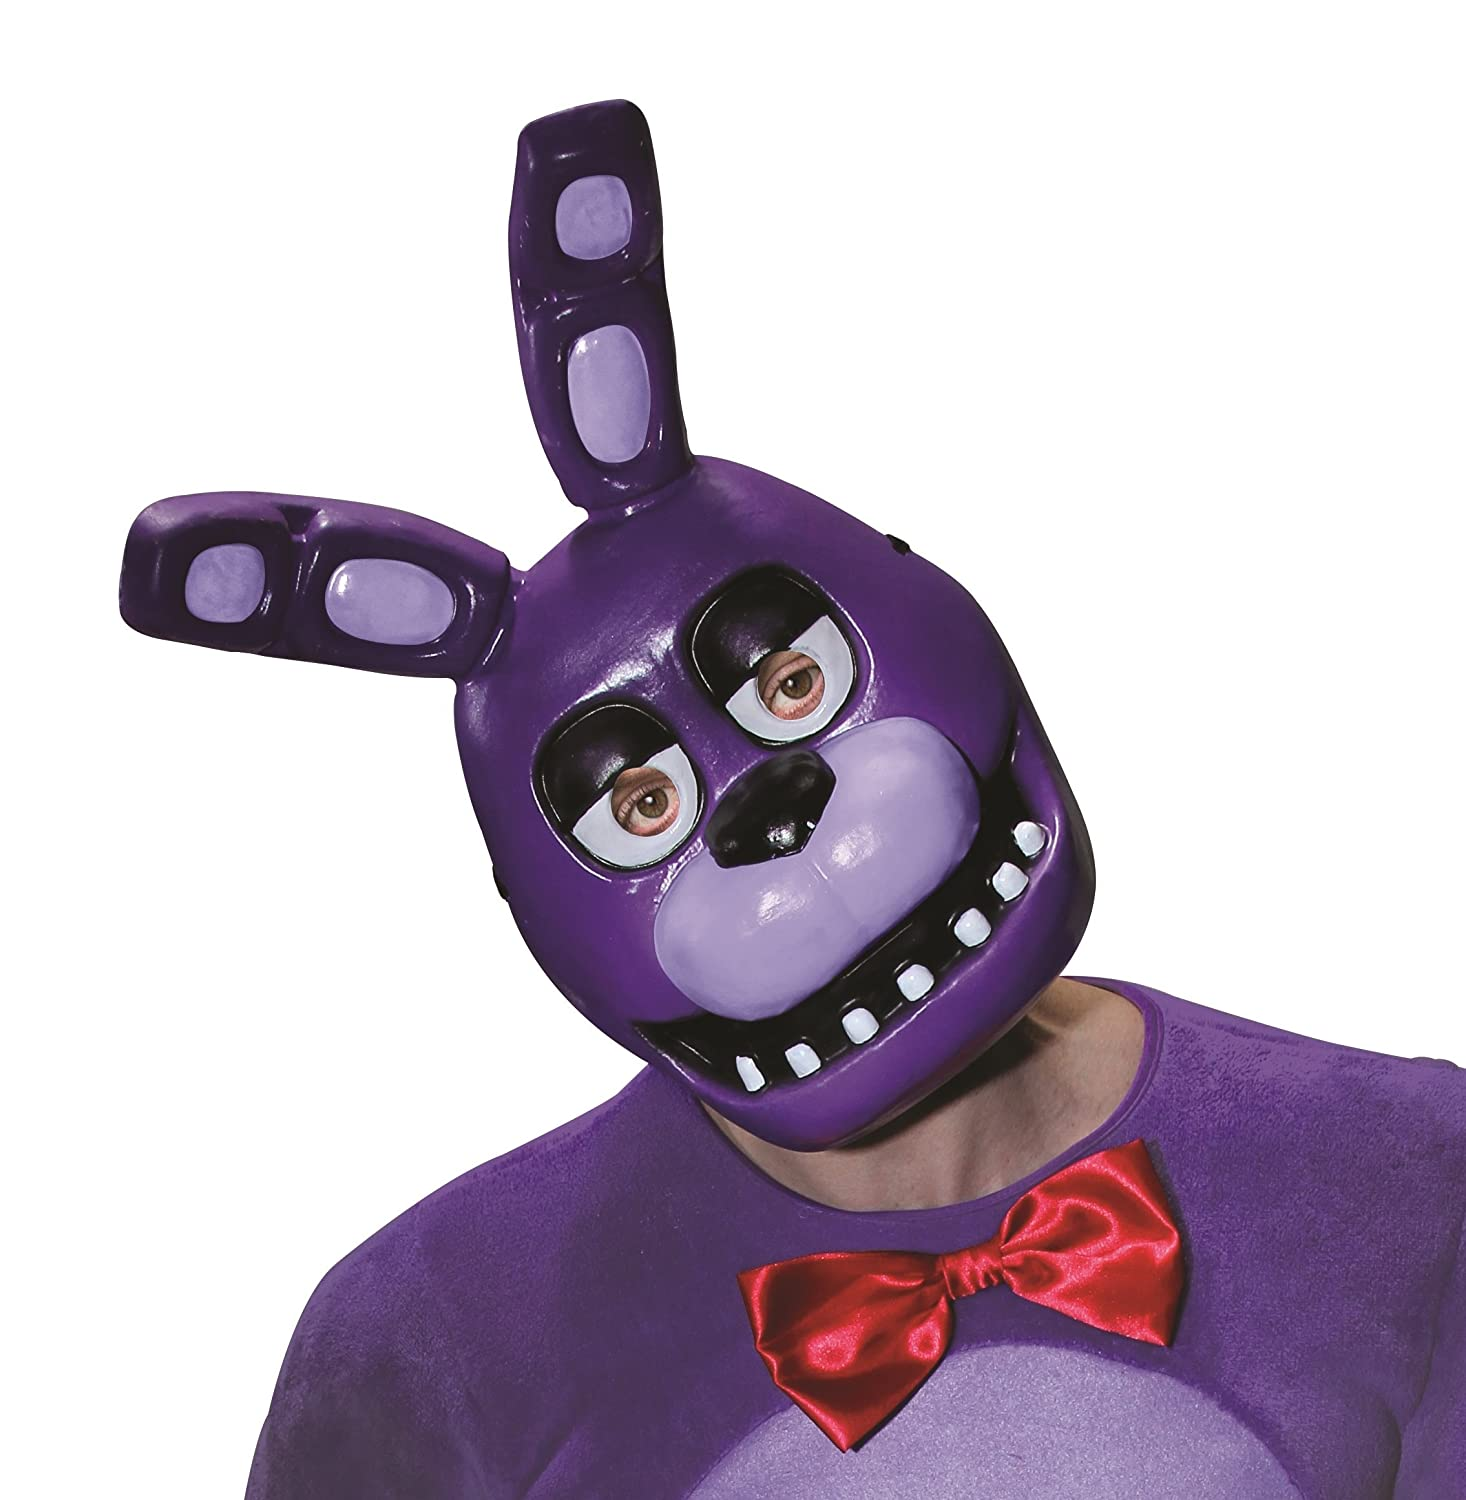 Amazon.com: Rubie's Costume Five Nights at Freddy's Bonnie Half ...